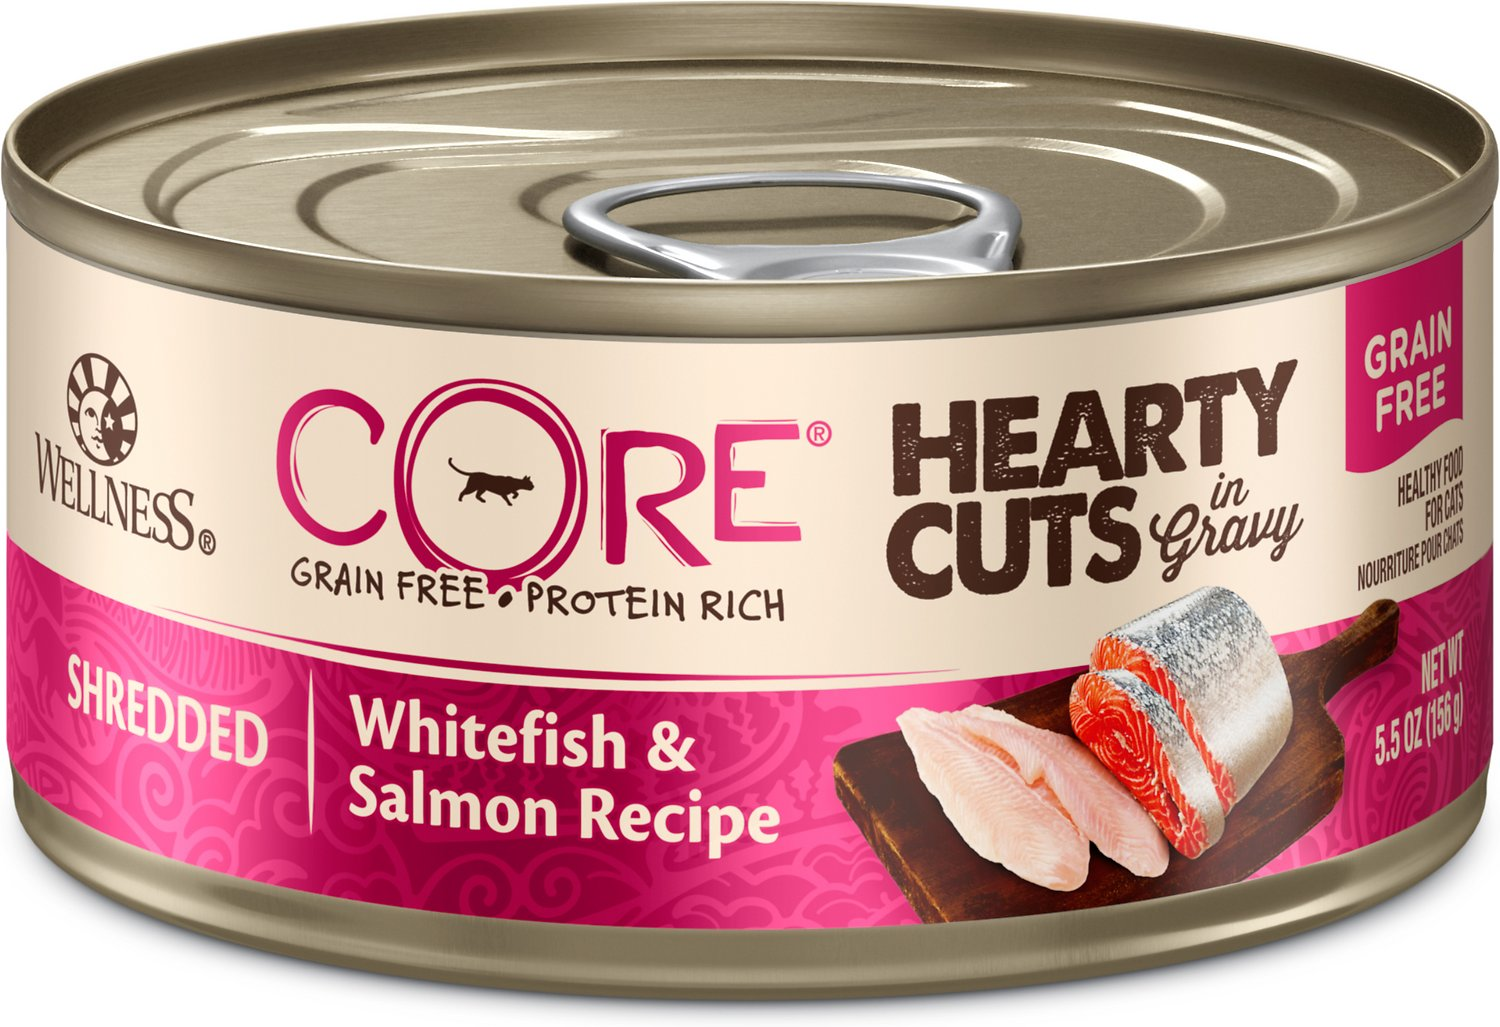 Wellness CORE Grain-Free Hearty Cuts in Gravy Shredded Whitefish & Salmon Recipe Canned Cat Food, 5.5-oz